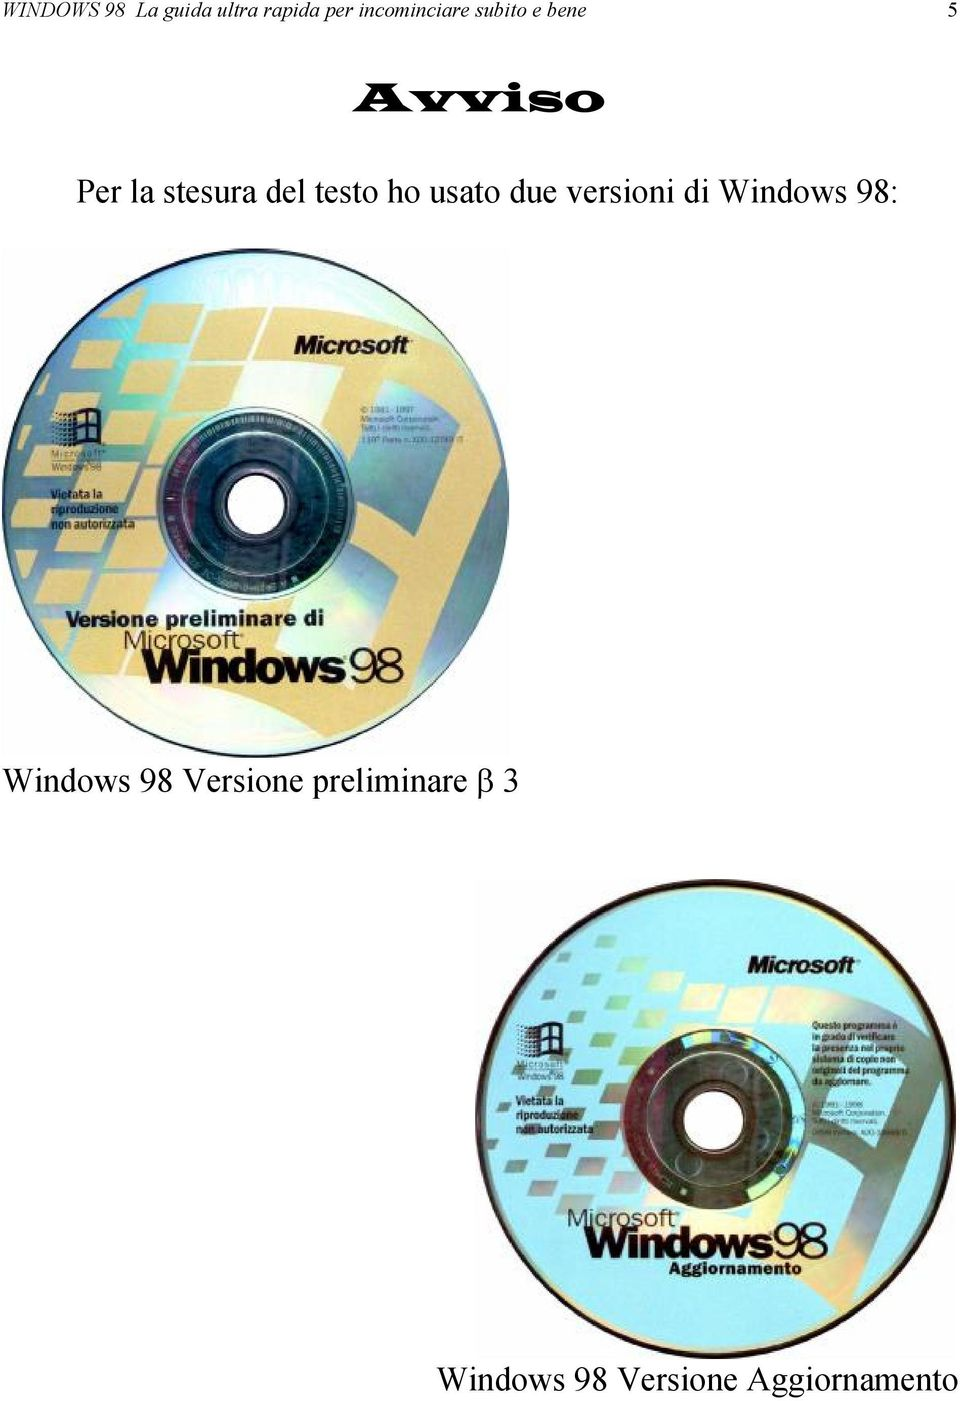 usato due versioni di Windows 98: Windows 98